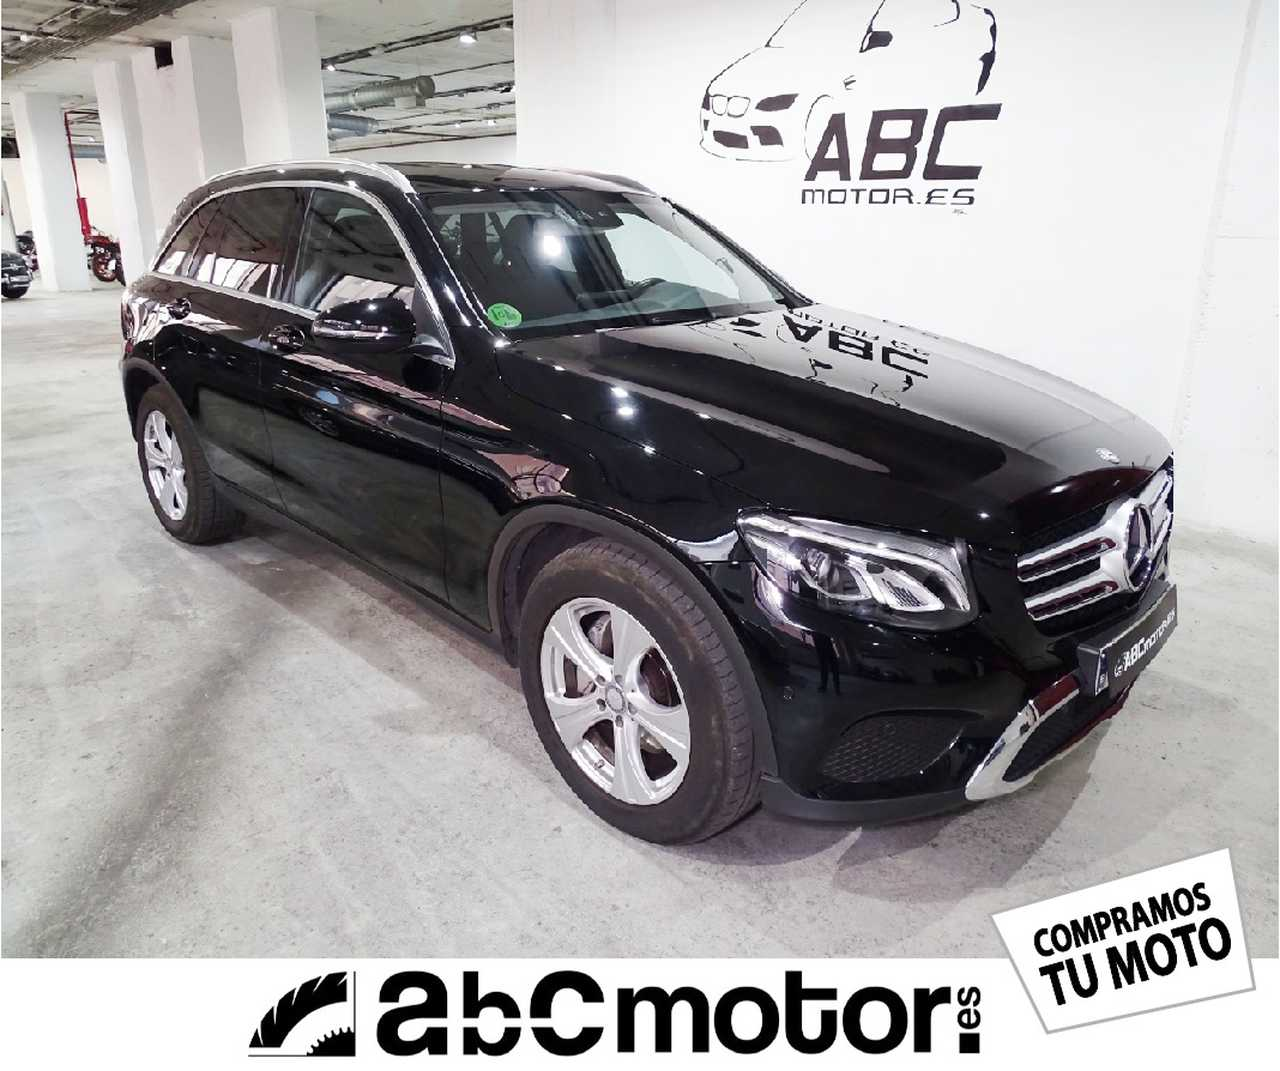 Mercedes GLC 220 d 4MATIC   - Foto 1